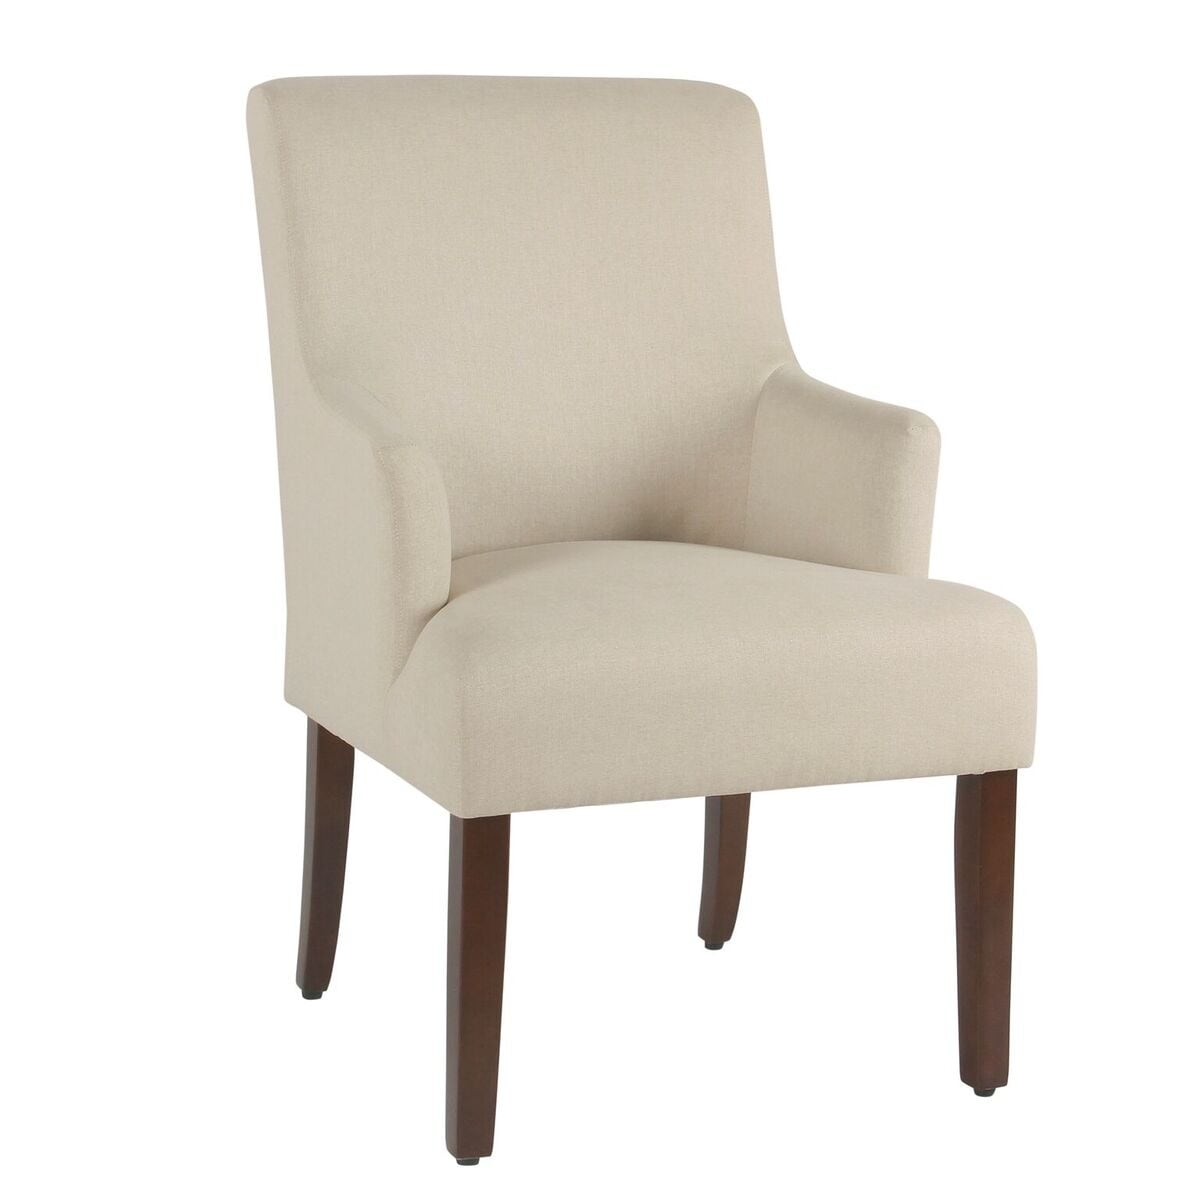 HomePop Meredith Anywhere Chair - Stain Resistant Cream ...